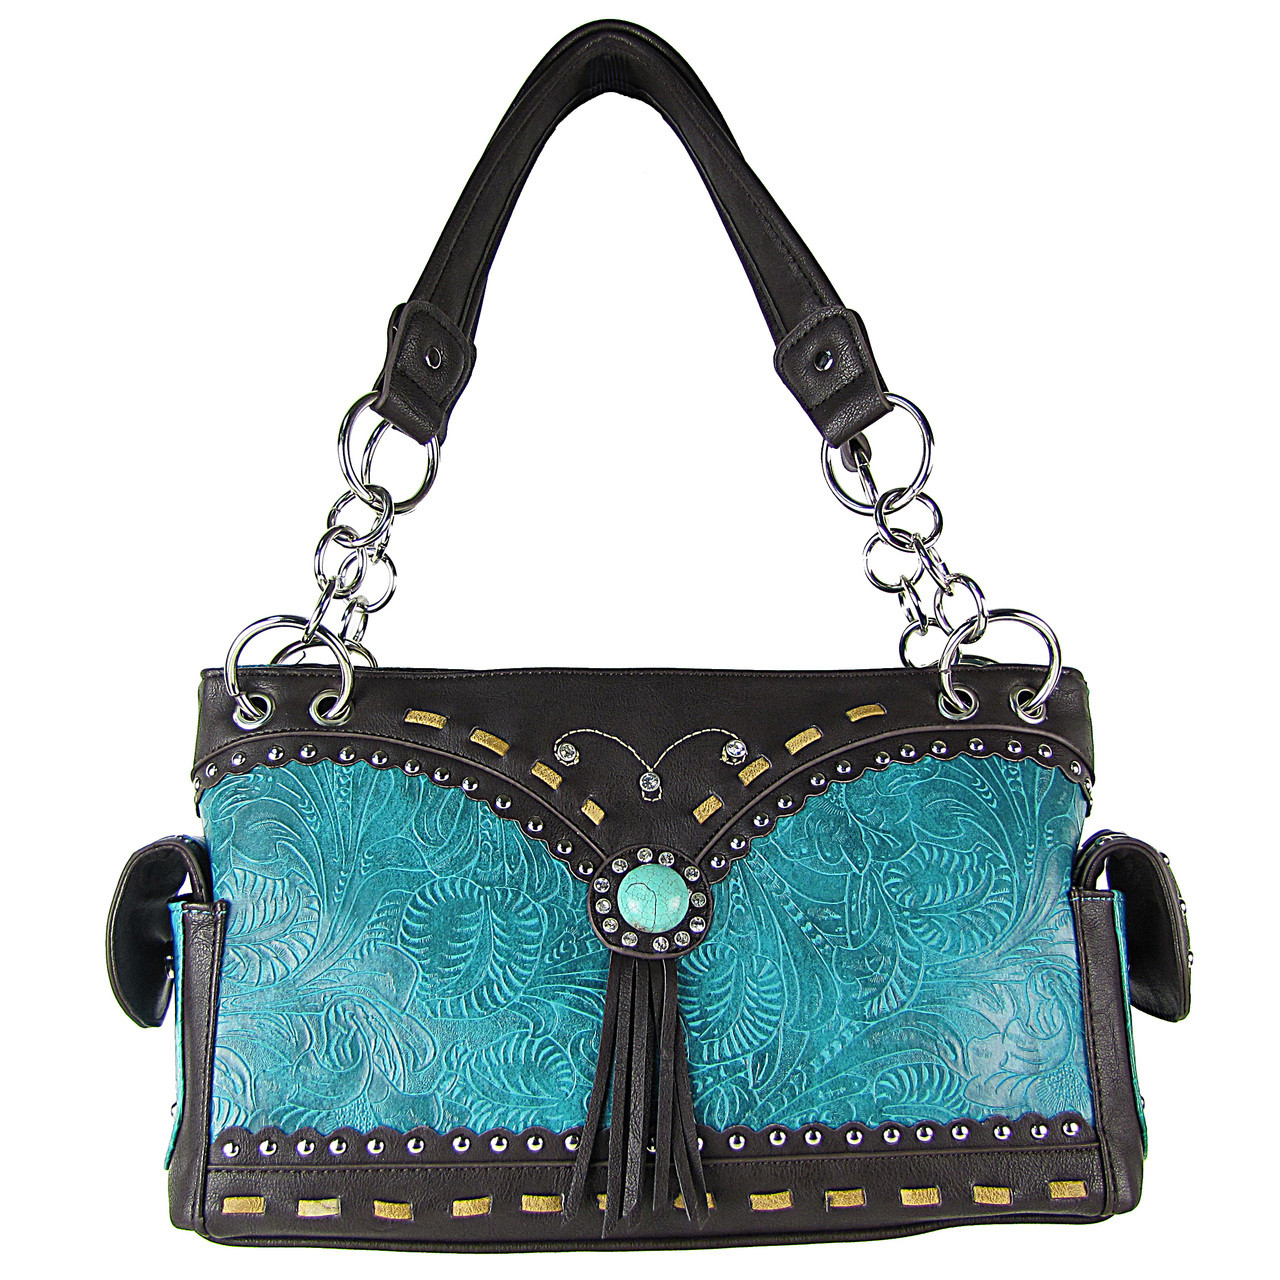 TURQUOISE WESTERN BLUE STONE TOOLED LOOK SHOULDER HANDBAG HB1-39W53TRQ